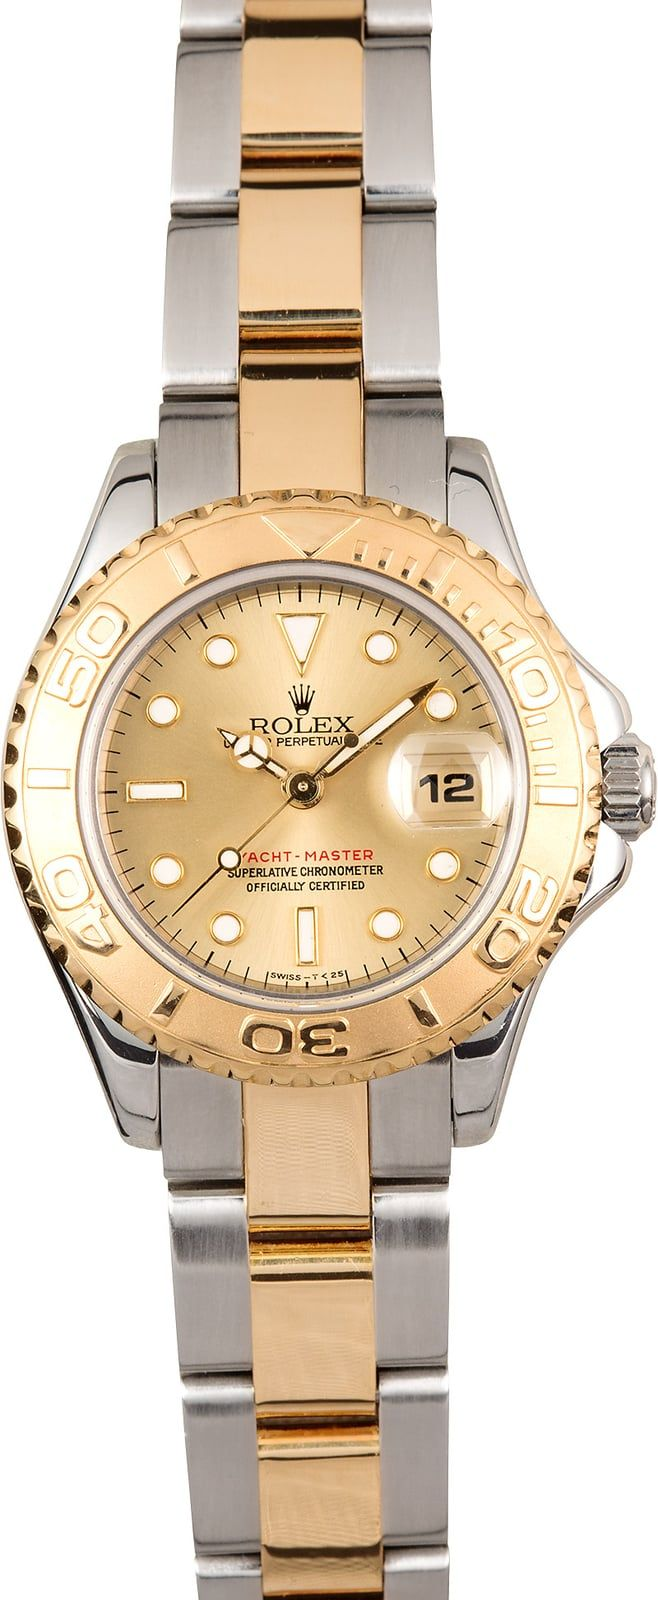 Manufacturer: Rolex   Model Name/Number: Yacht-Master 69623   Serial/Year: U 1997/1998   Grade: (What's This?) II   Gender: Ladies   Features: Automatic movement, scratch-resistant sapphire crystal, waterproof screw-down crown, Quickset date   Case: Stainless steel w/ 18k yellow gold rotatable time-lapse bezel (29mm)   Dial: Champagne w/ white hour markers and luminous hands   Bracelet: Stainless steel and 18k yellow gold Oysterlock   Box & Papers: Bo...